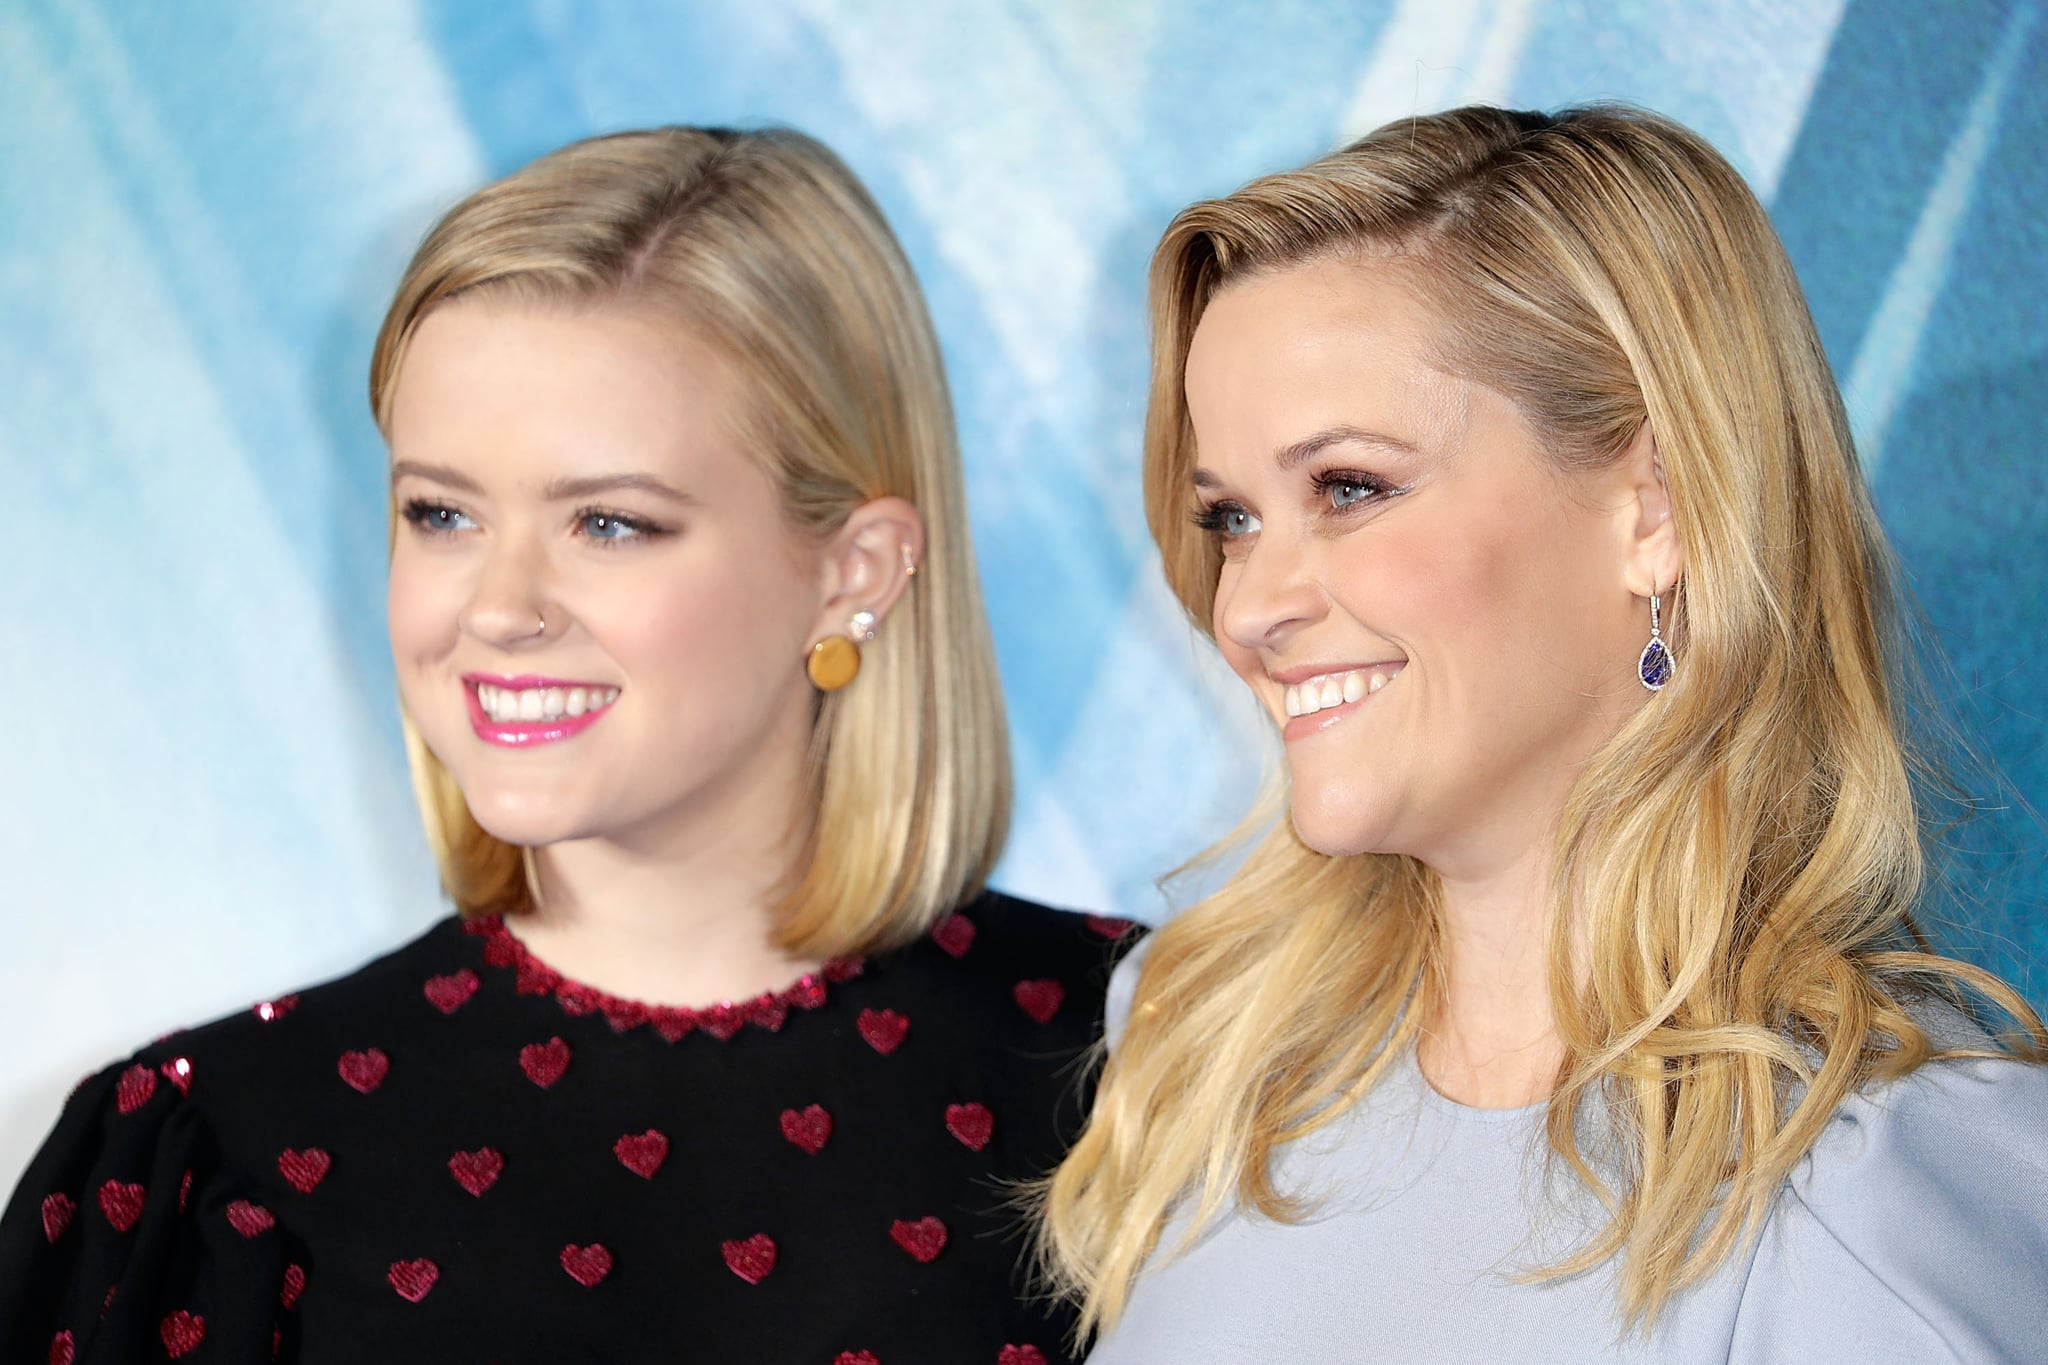 LONDON, ENGLAND - MARCH 13:  Reese Witherspoon (R) and Ava Phillippe attend the European Premiere of 'A Wrinkle In Time' at BFI IMAX on March 13, 2018 in London, England.  (Photo by John Phillips/John Phillips/Getty Images)